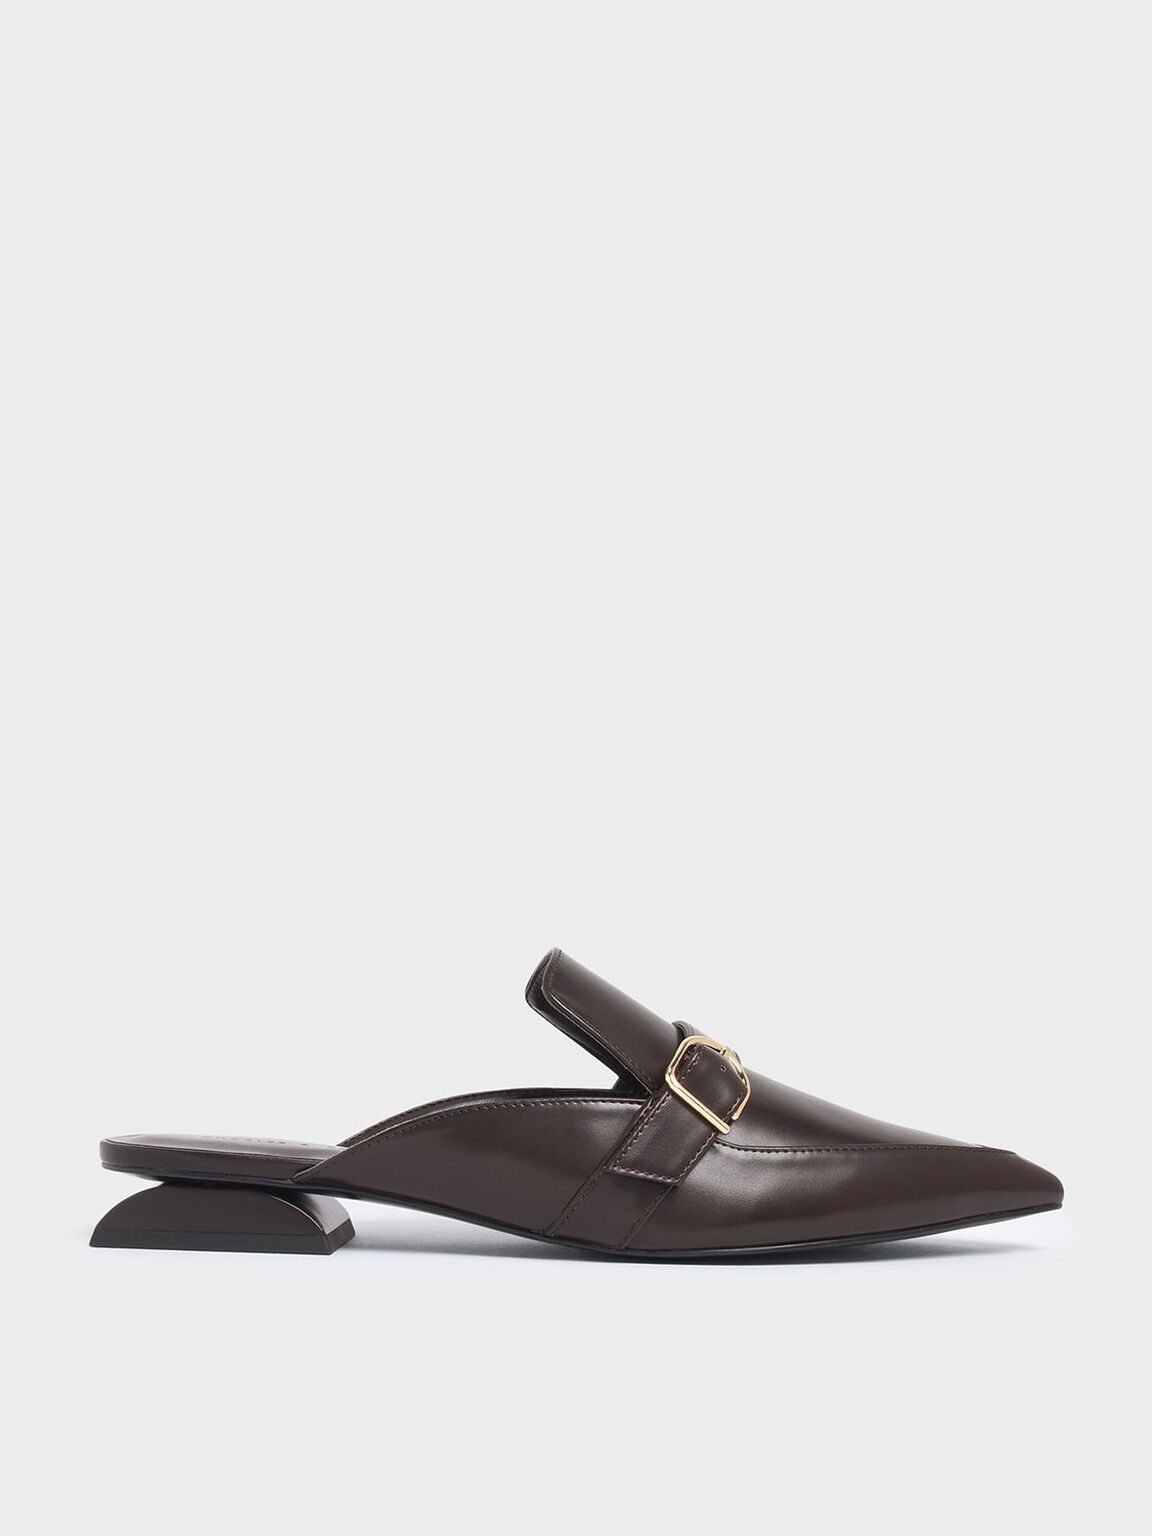 Sculptural Heel Buckle Mules, Dark Brown, hi-res